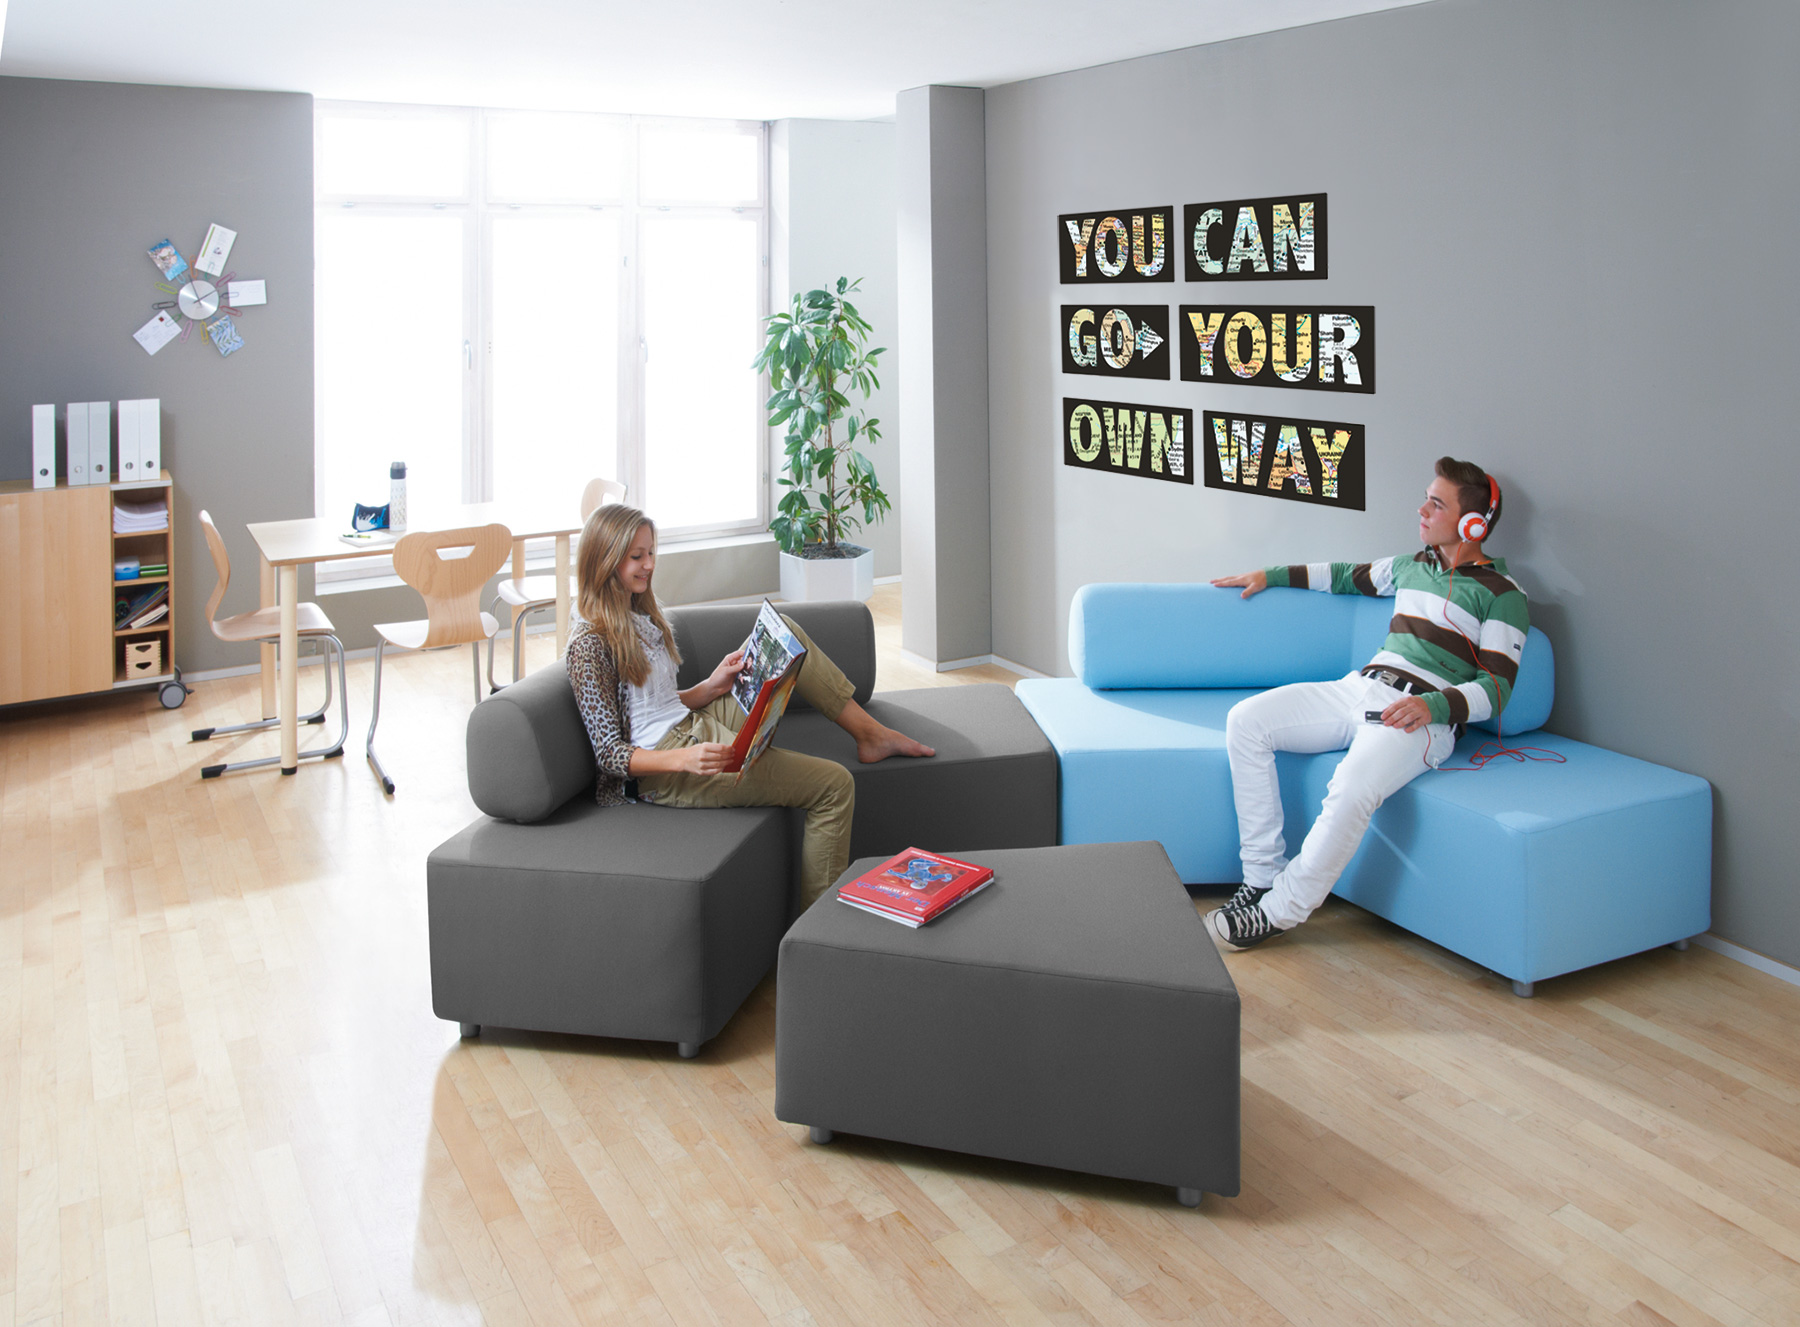 Add Some Modular Flexibility to Your Library Spaces With the HABA Boomerang Sofa and Ottoman.